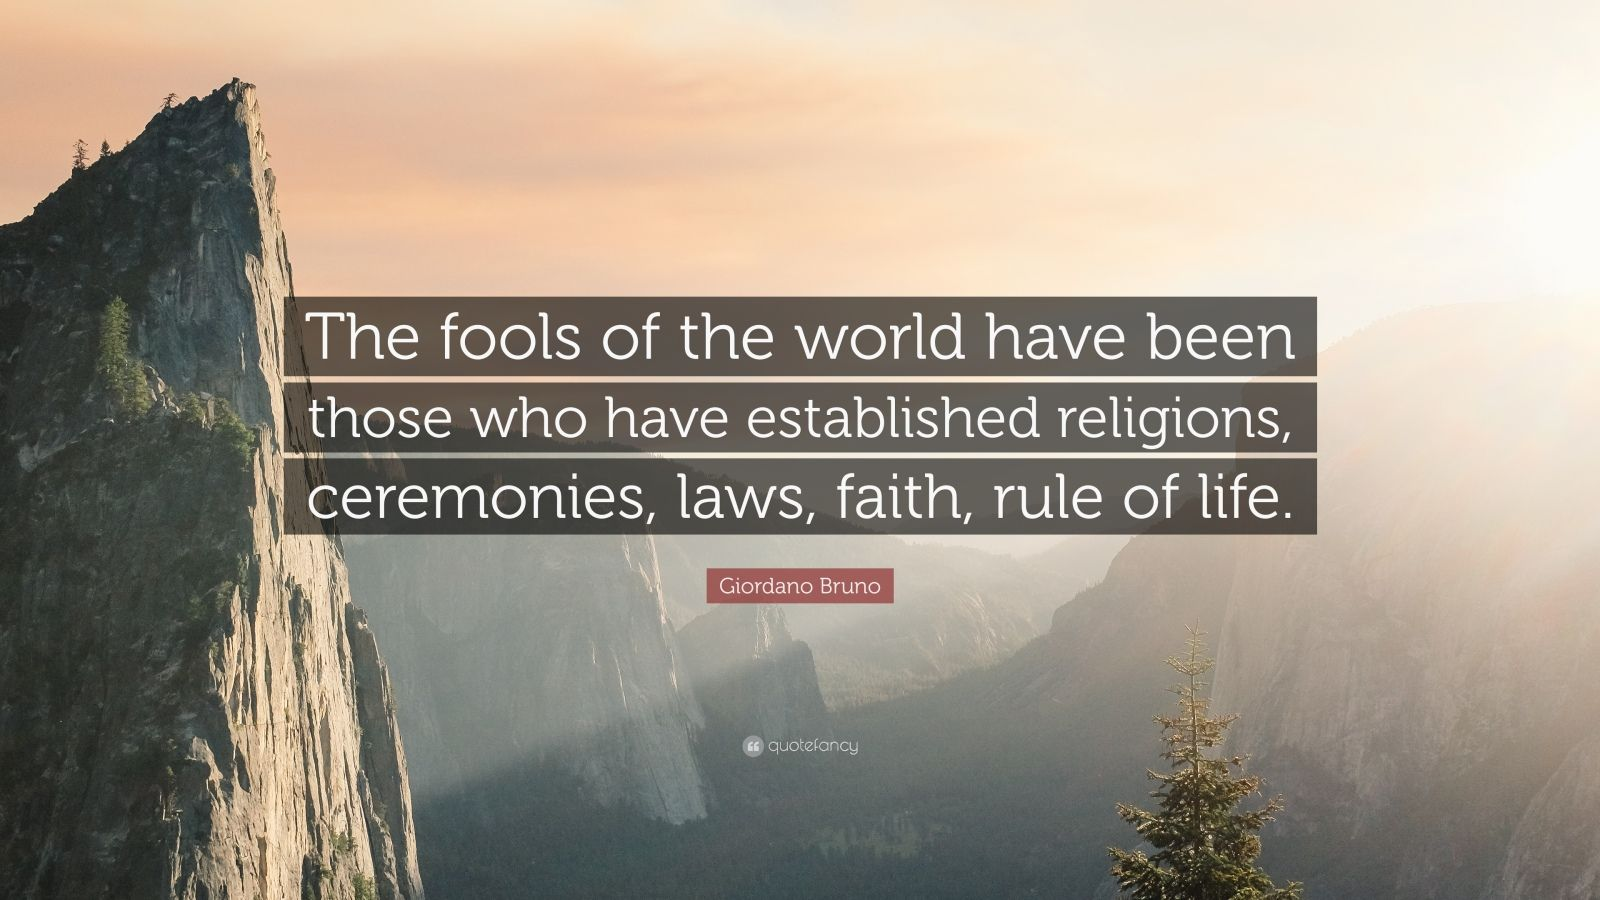 """Giordano Bruno Quote: """"The fools of the world have been those who have established religions, ceremonies, laws, faith, rule of life."""""""